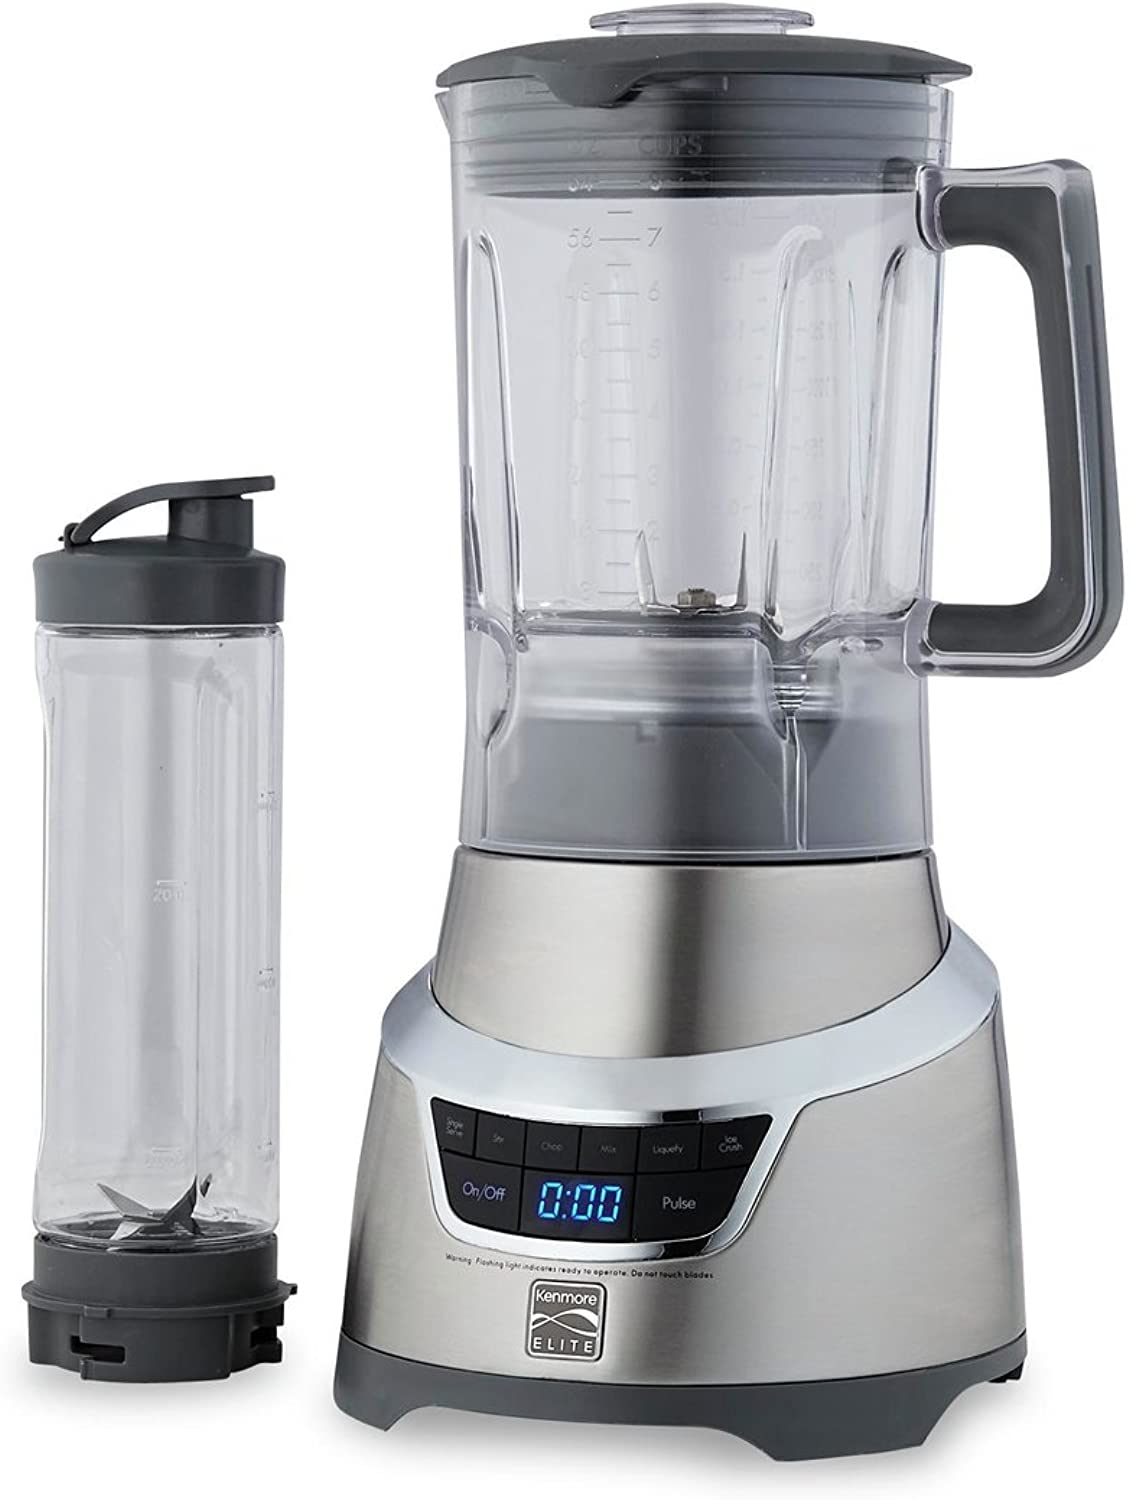 Kenmore Elite 76773 1.3 Horsepower Blender with Single Serve Cup in Stainless Steel